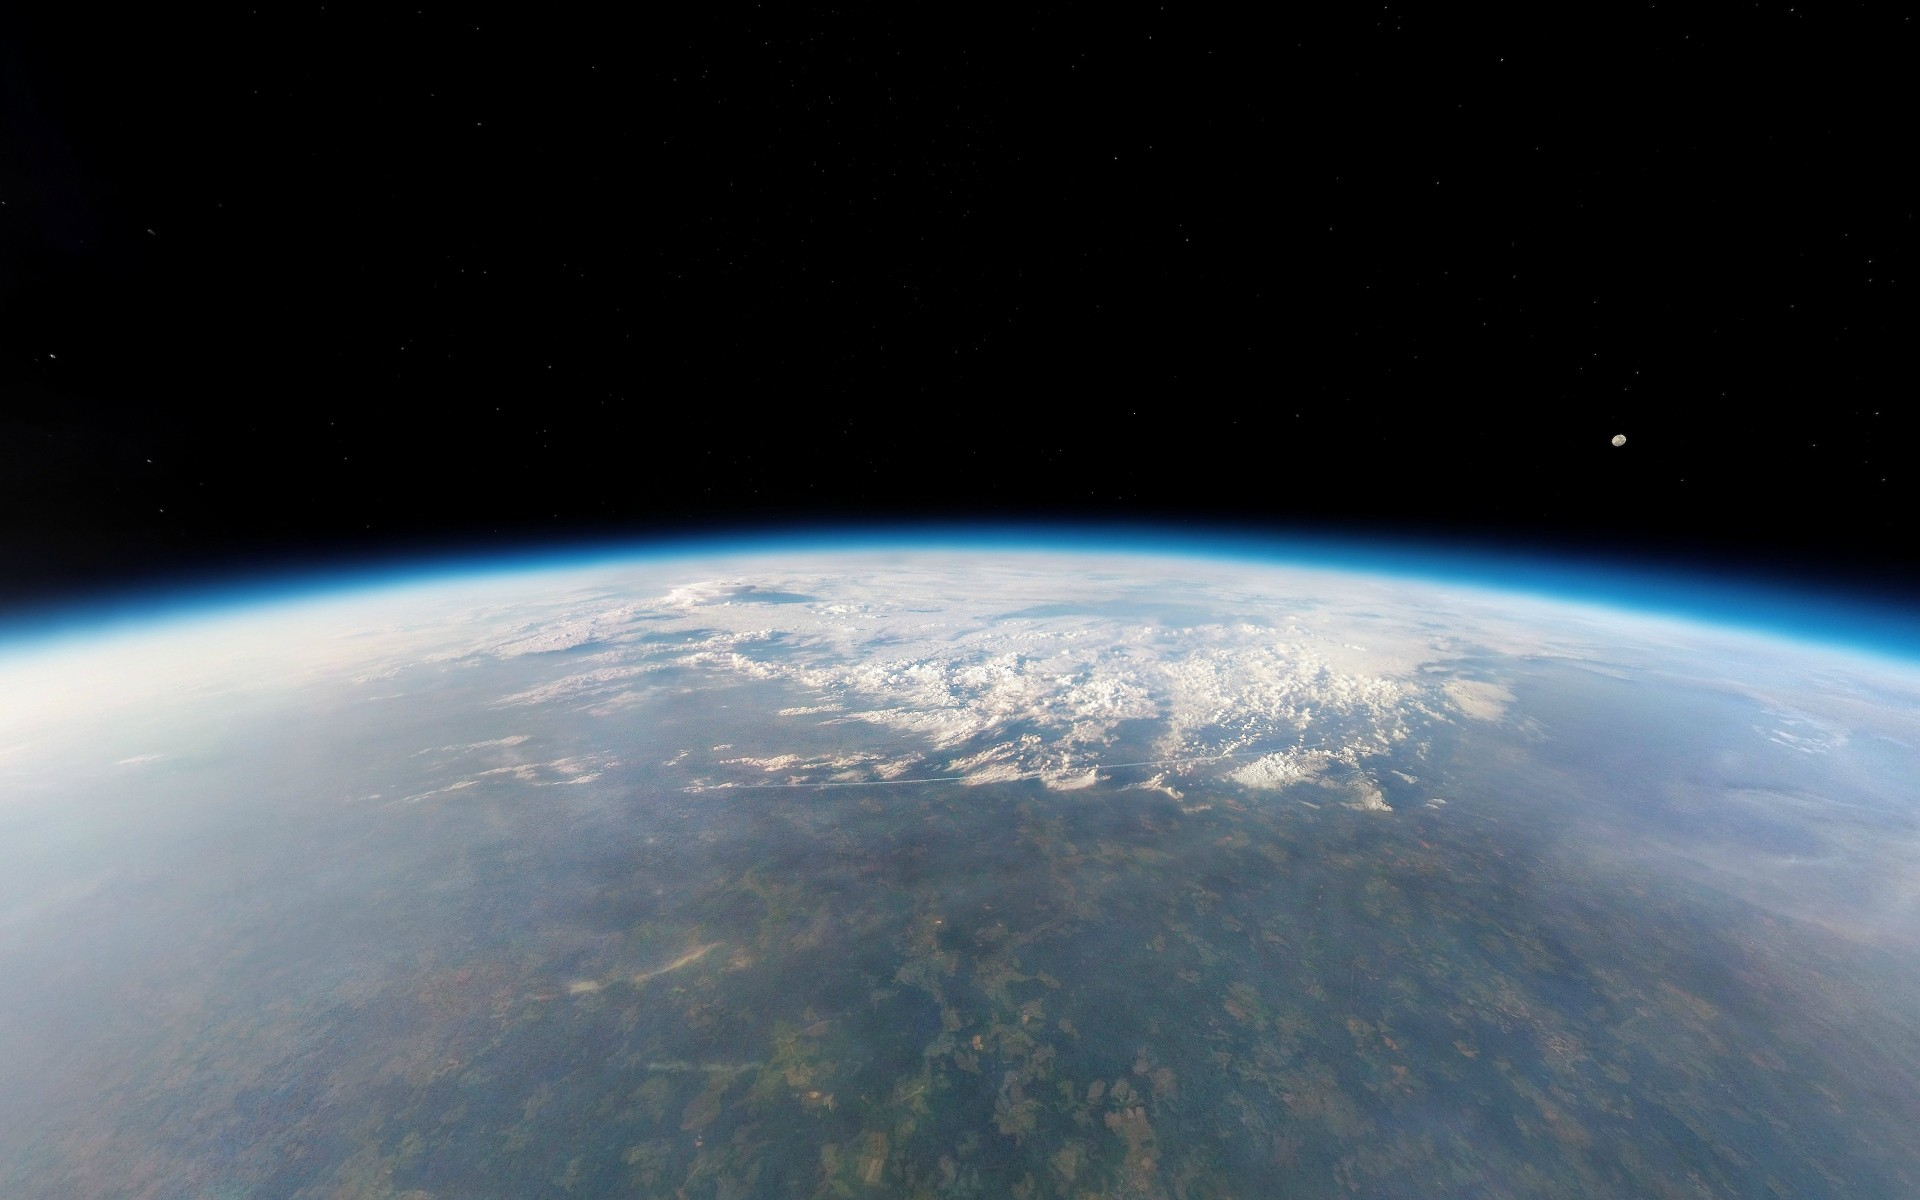 General 1920x1200 Earth space atmosphere clouds orbital view